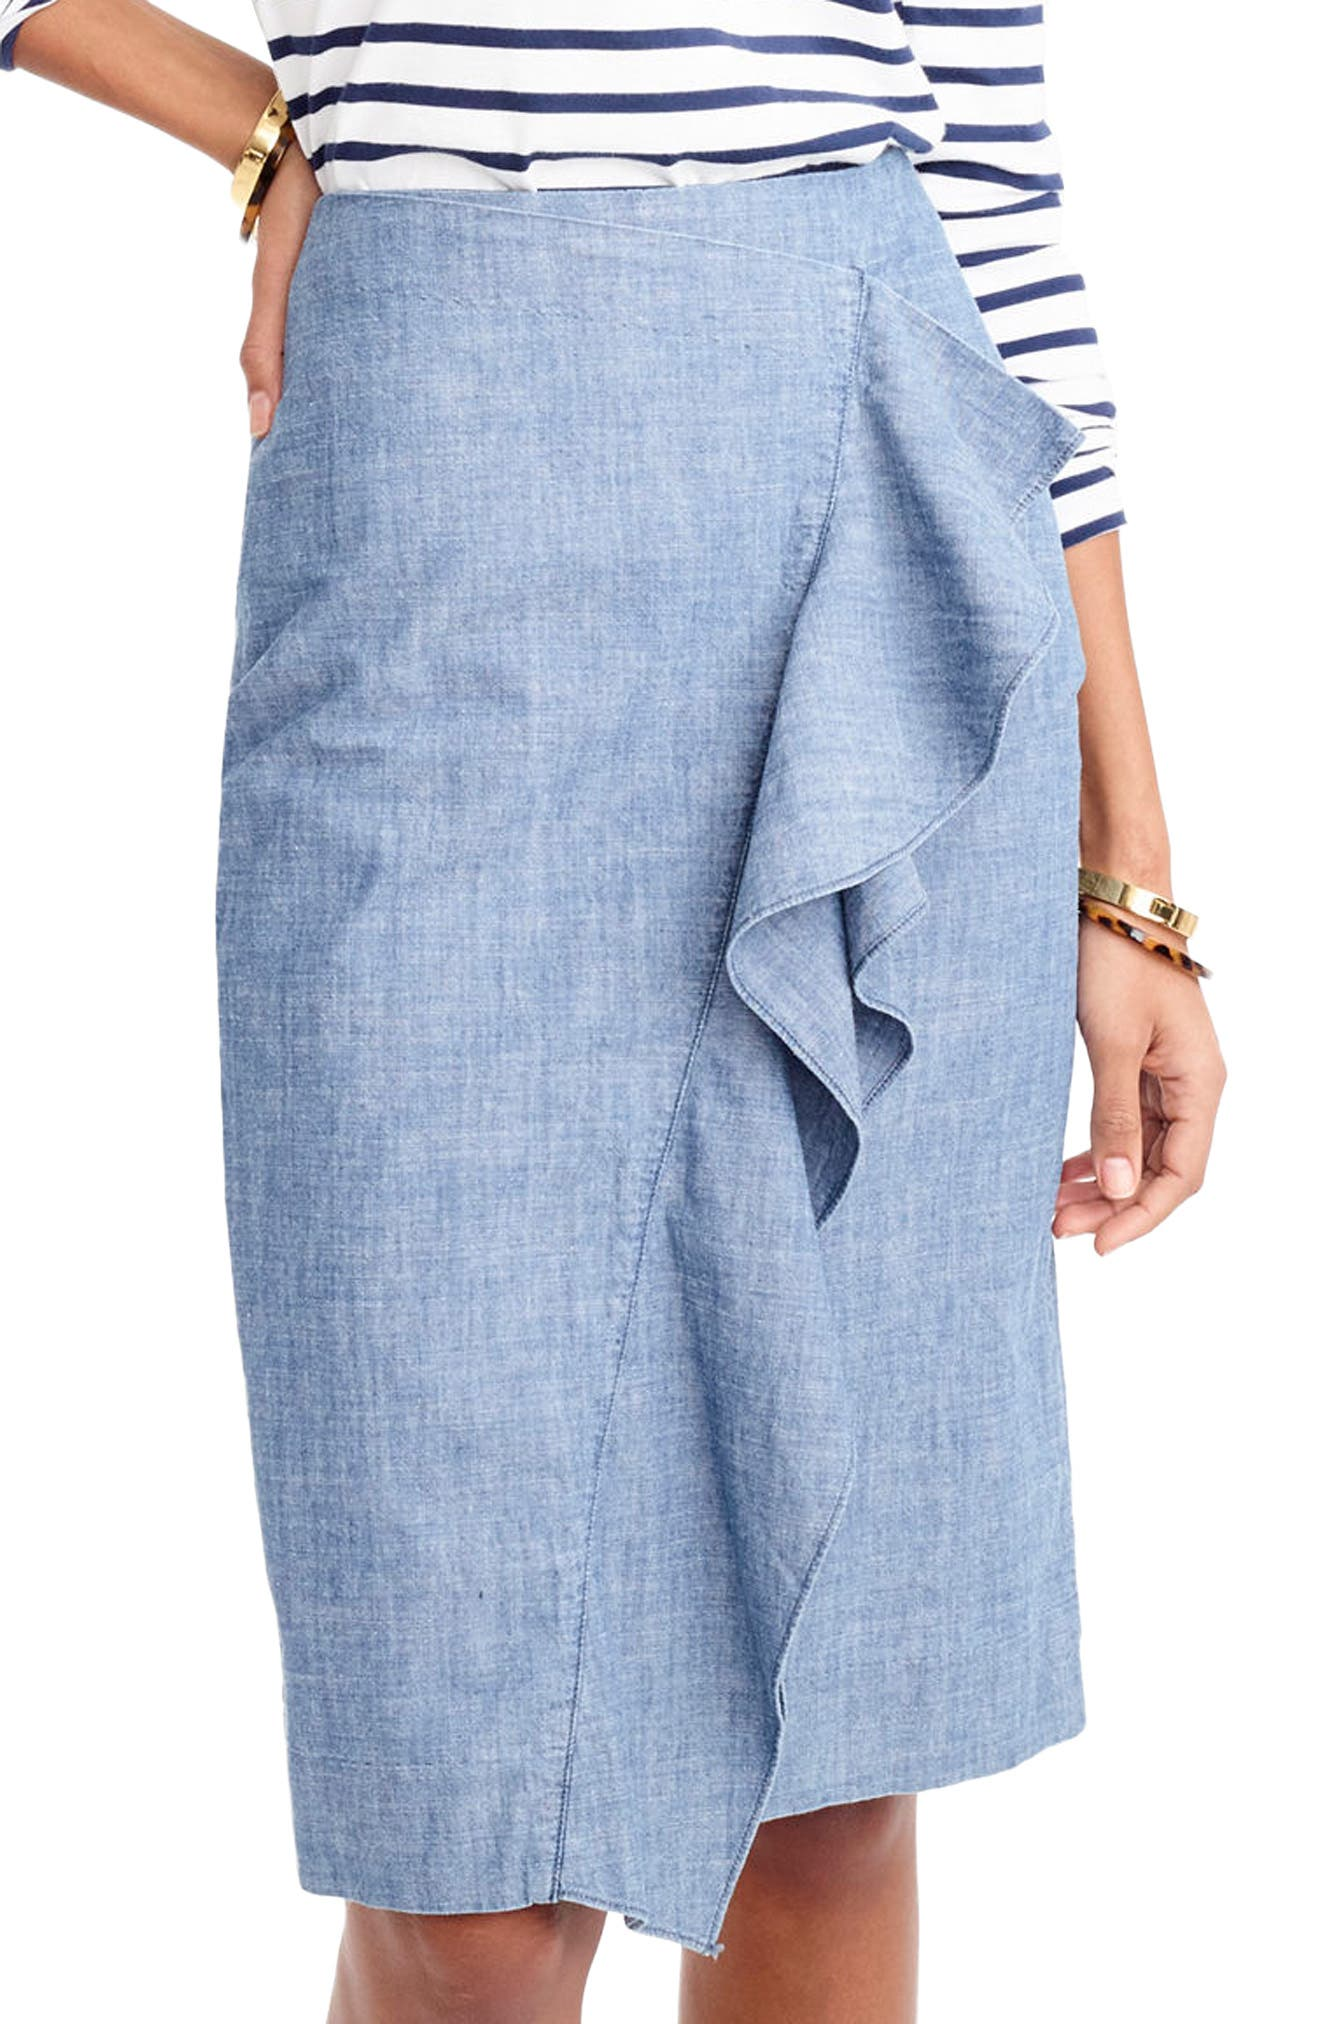 Main Image - J.Crew Chambray Ruffle Skirt